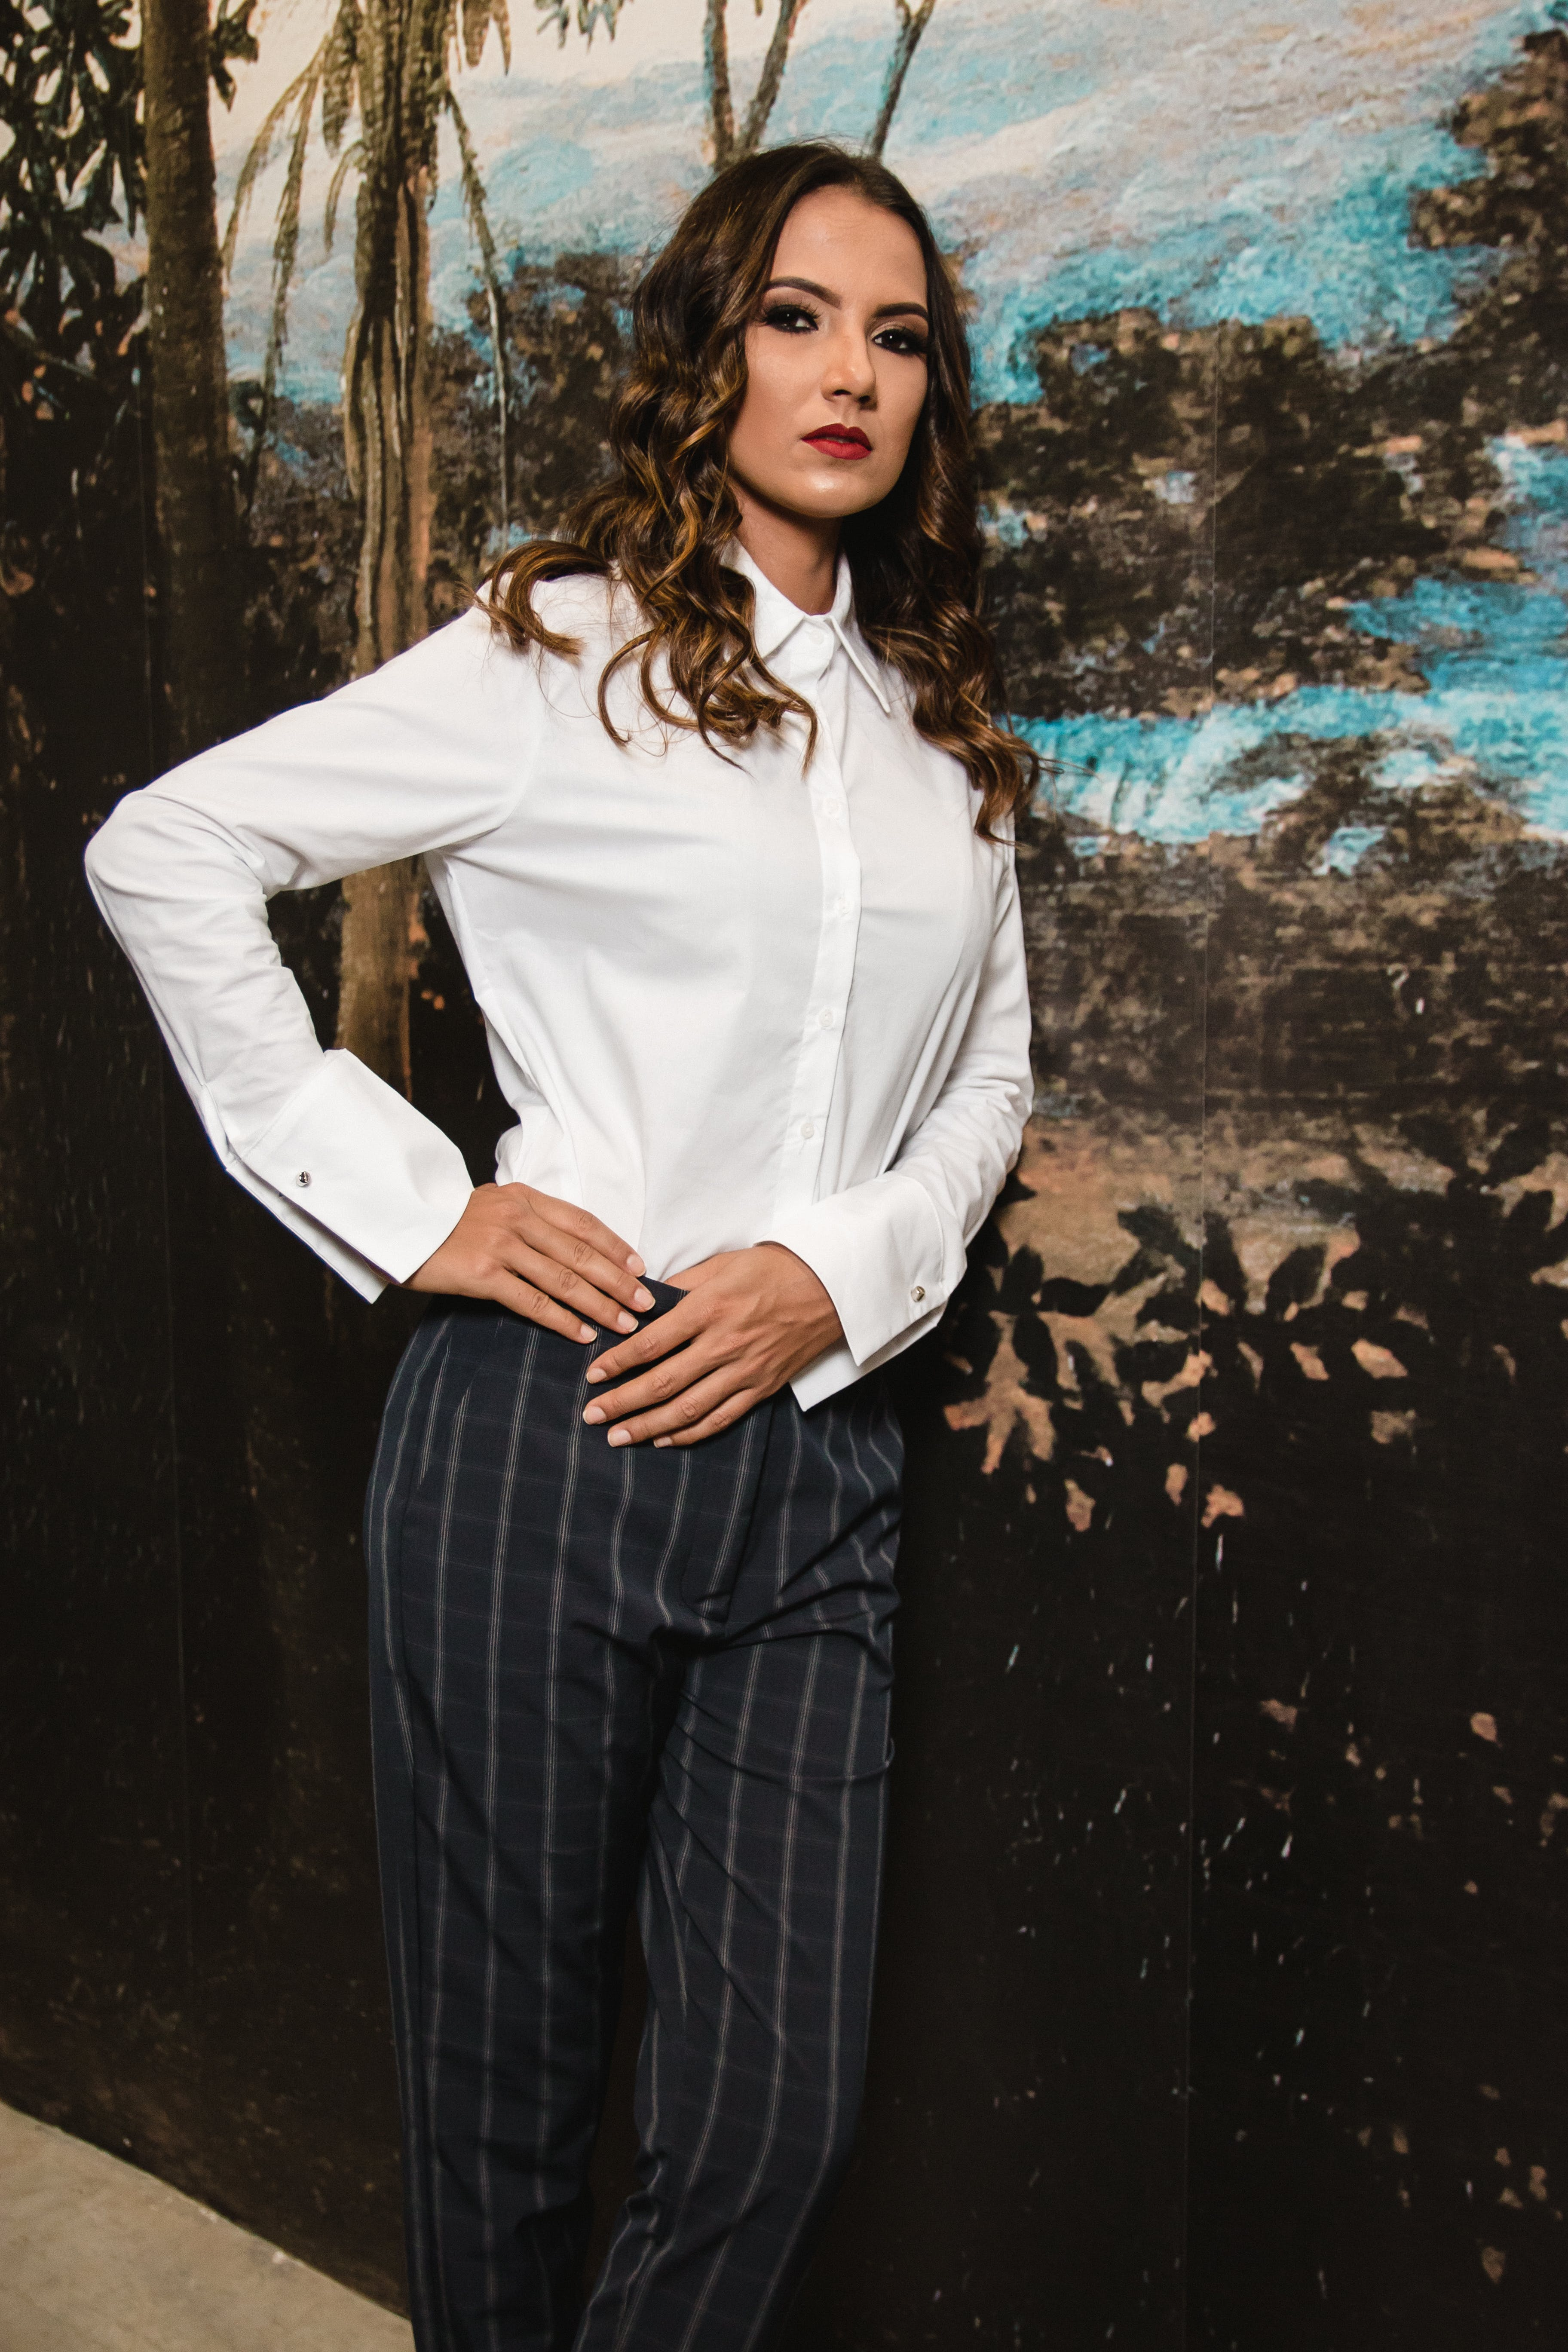 Woman Posing in Collard Long-sleeved Shirt and Grey Pants